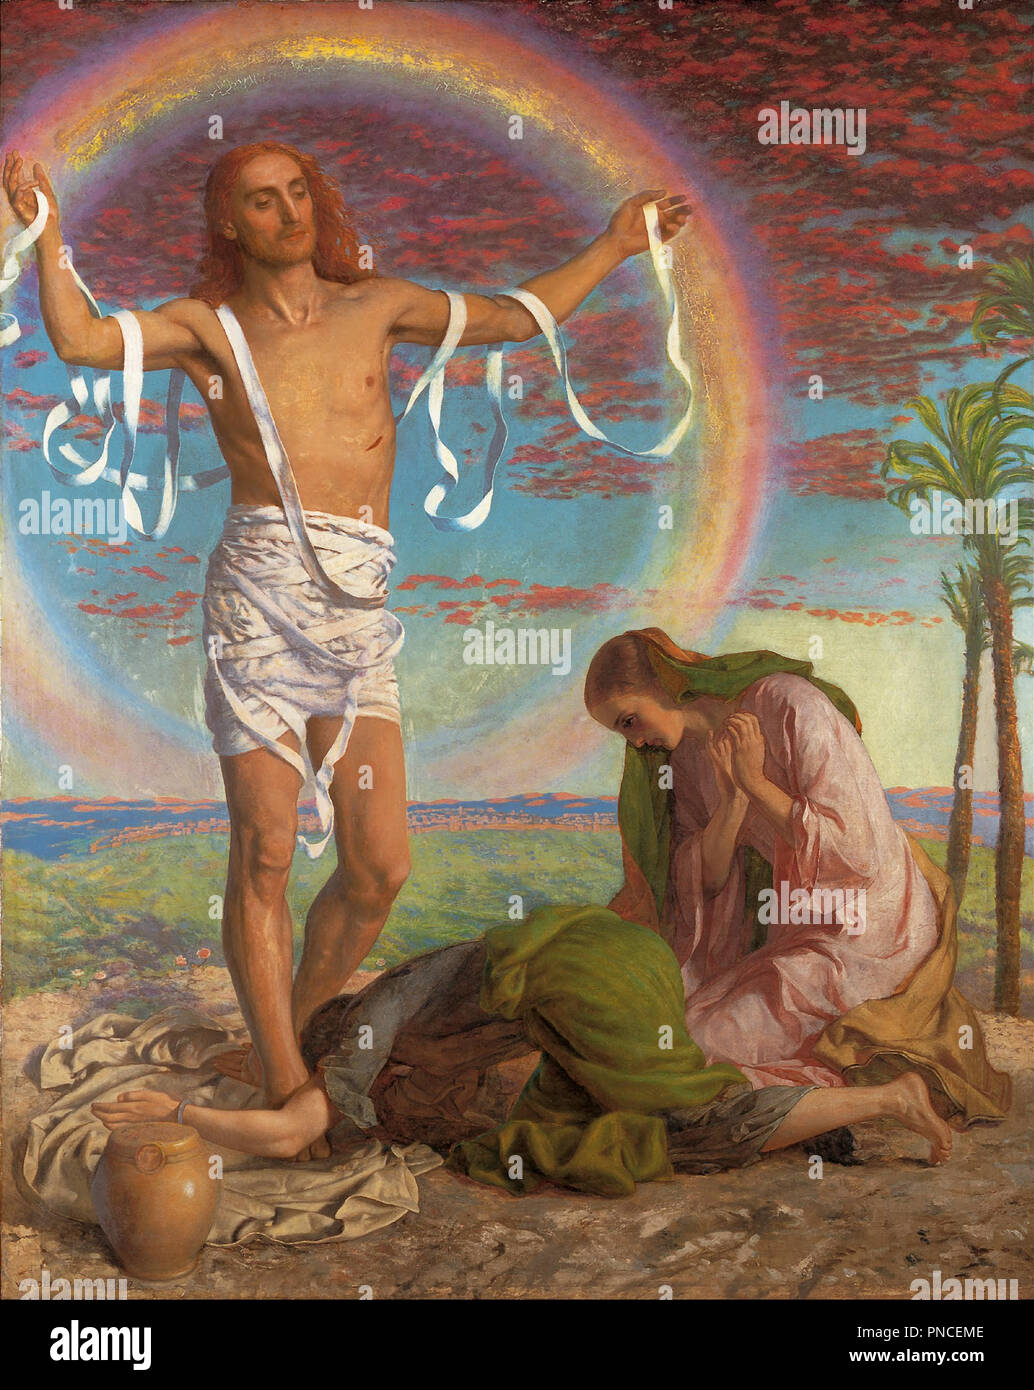 Christ and the two Marys. Date/Period: 1847 & 1897. Painting. Oil on canvas over wood panel. Height: 117.50 mm (4.62 in); Width: 94 mm (3.70 in). Author: William Holman Hunt. - Stock Image